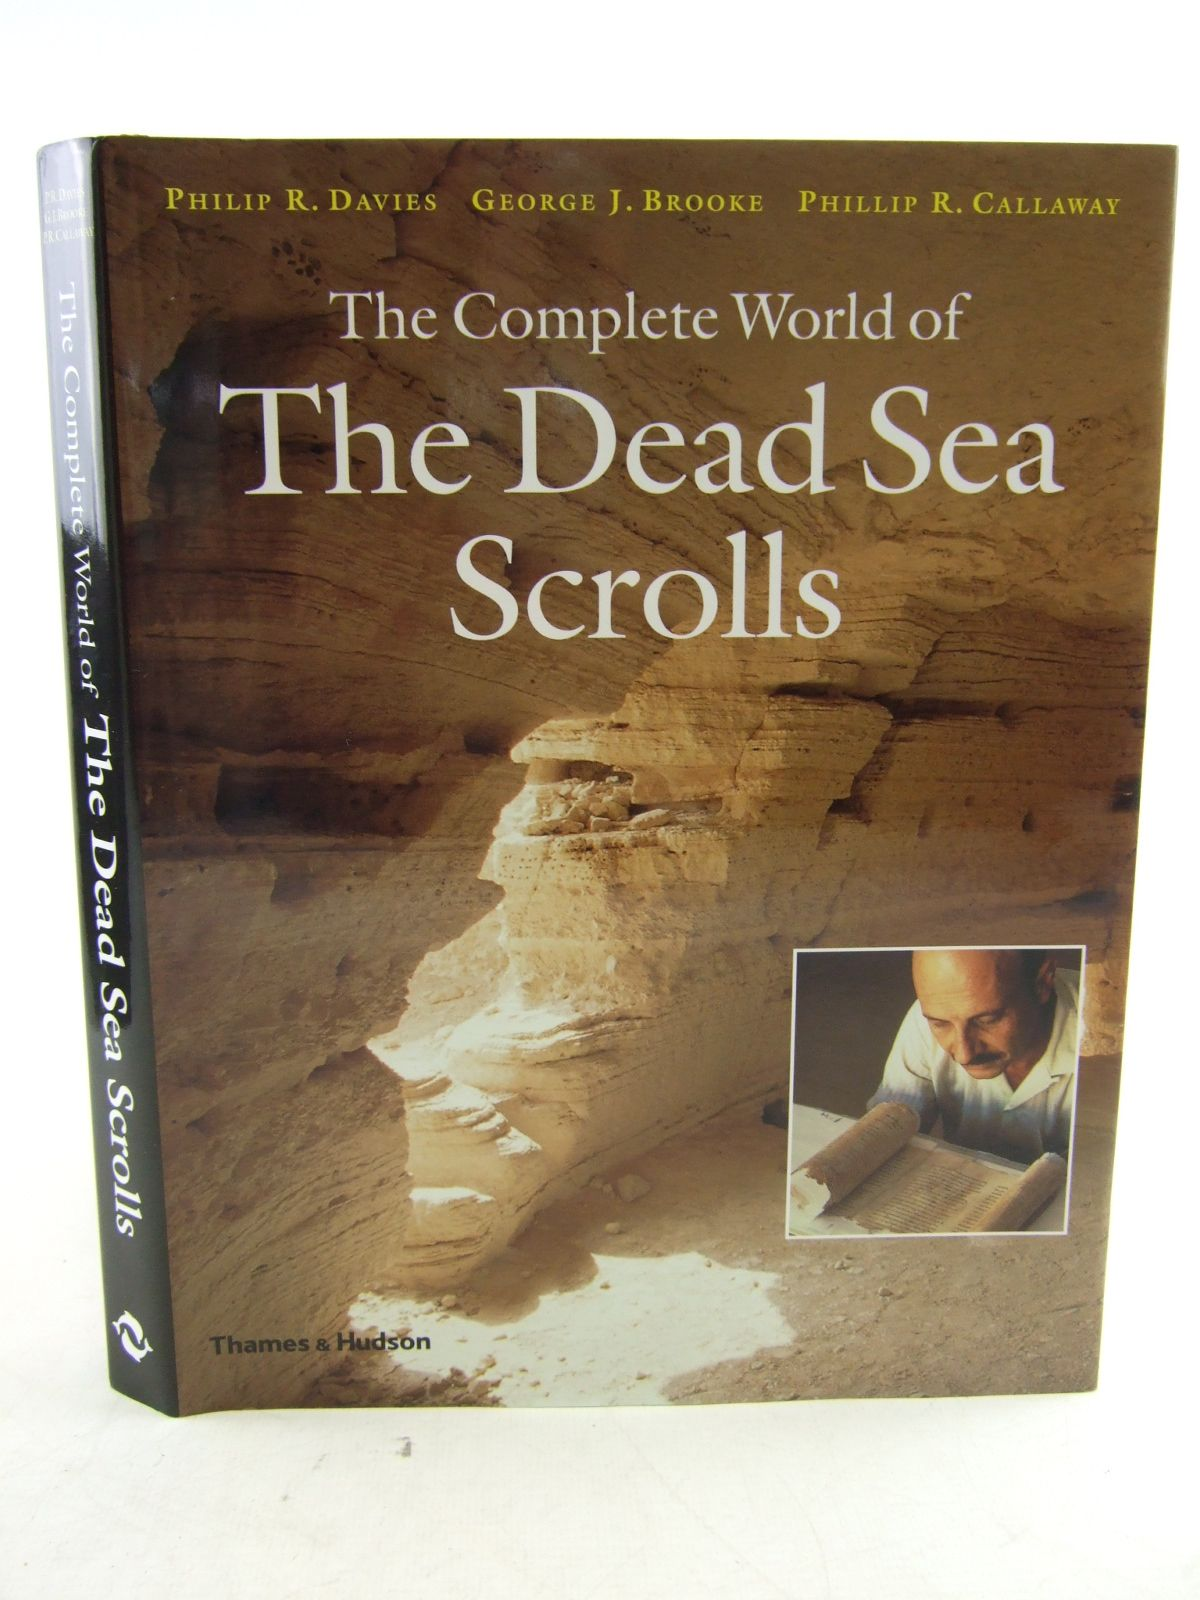 Dead sea scrolls coupons